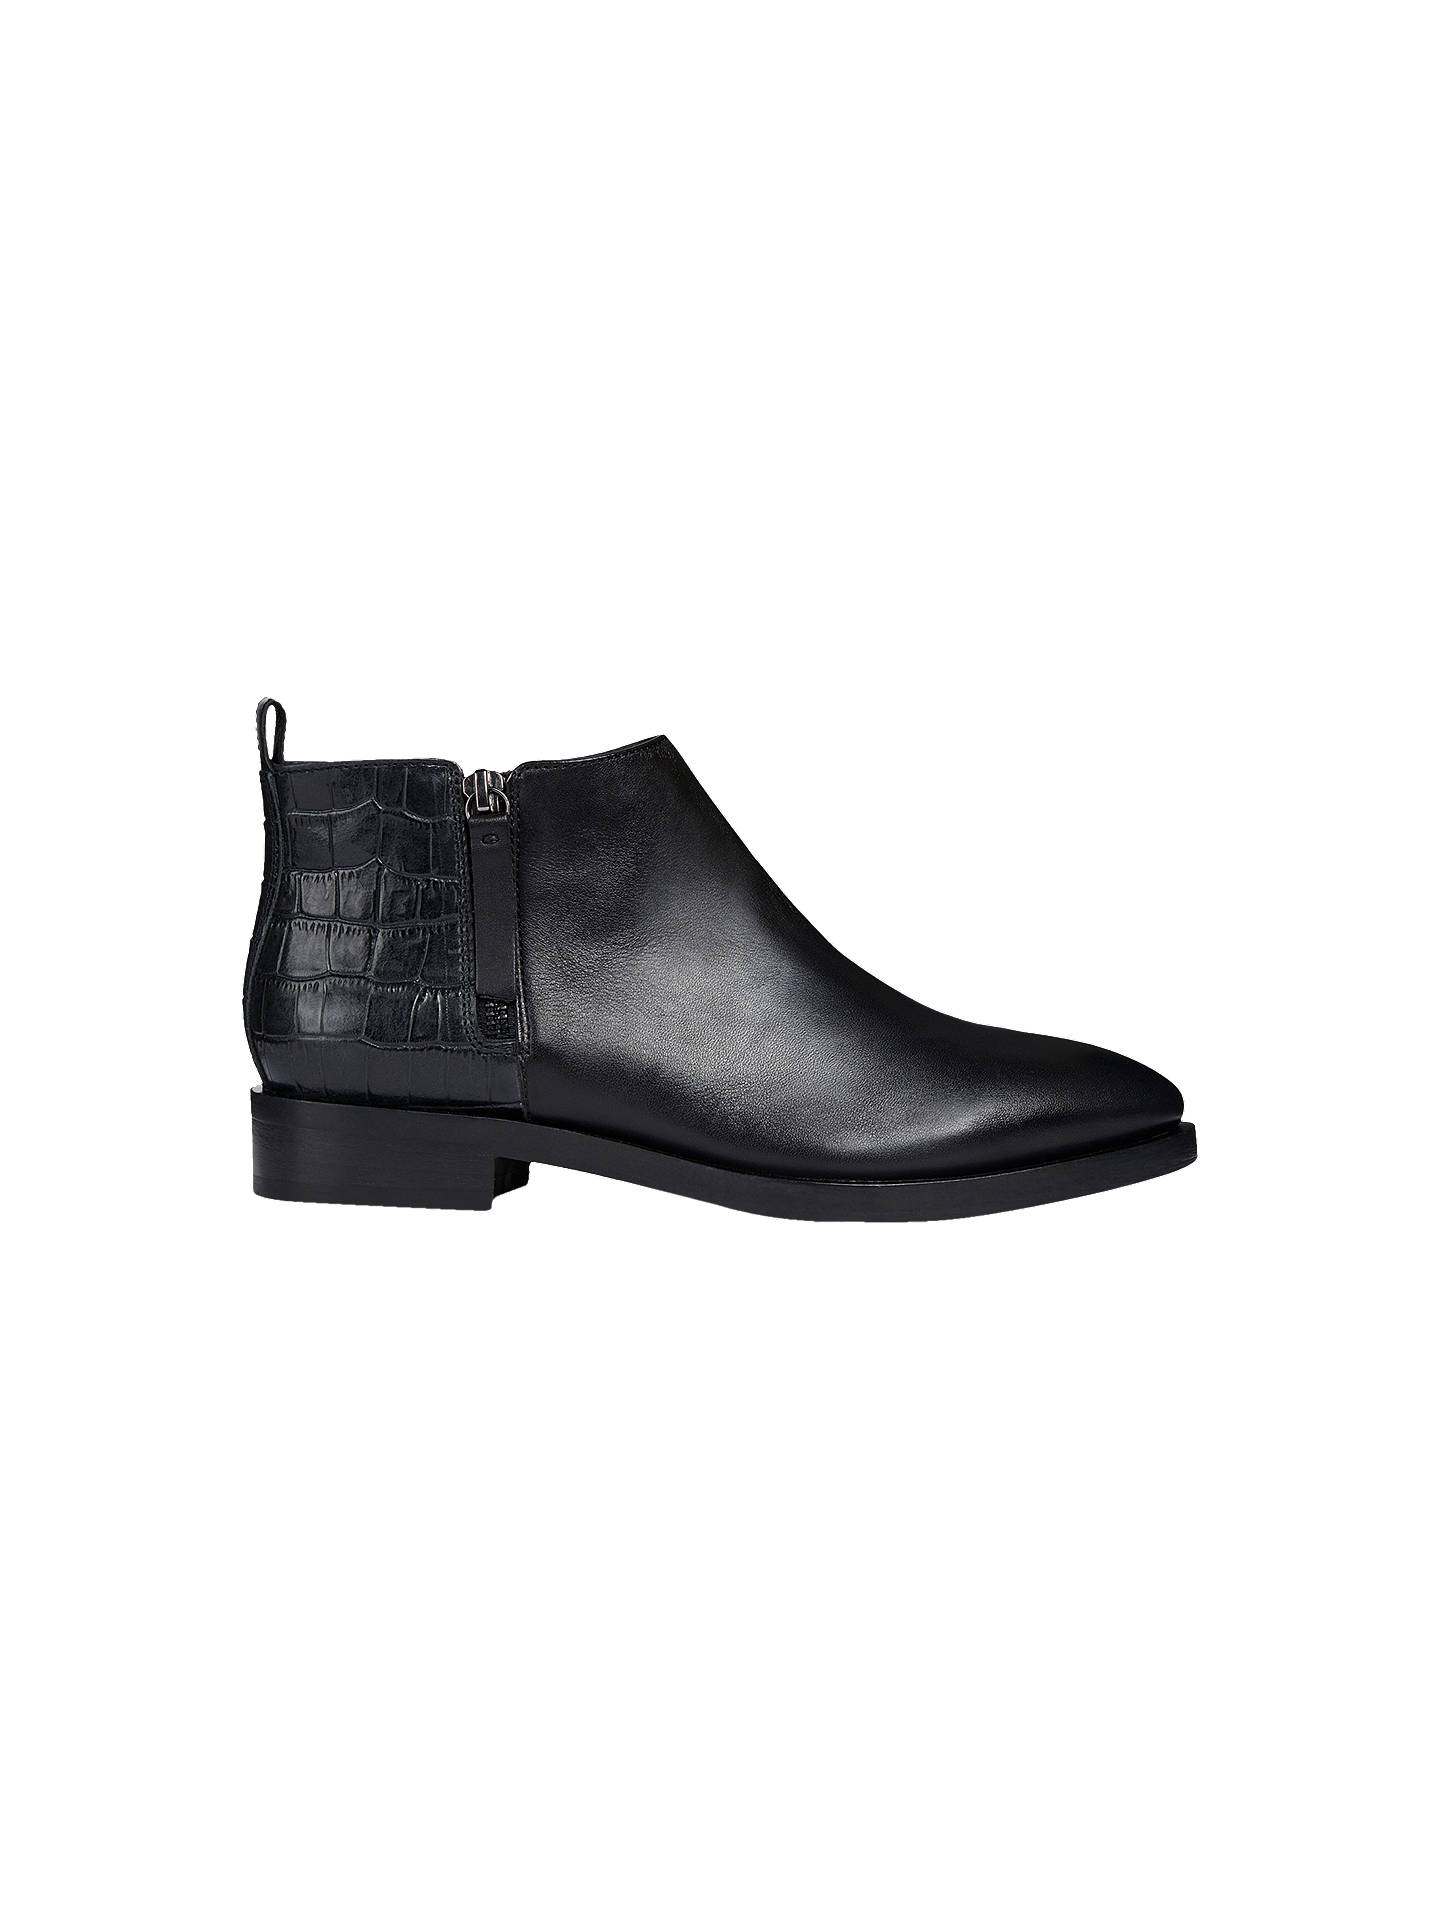 54c6fe1d1c Buy Geox Women's Donna Brogue Ankle Boots, Black Leather, 5 Online at  johnlewis.